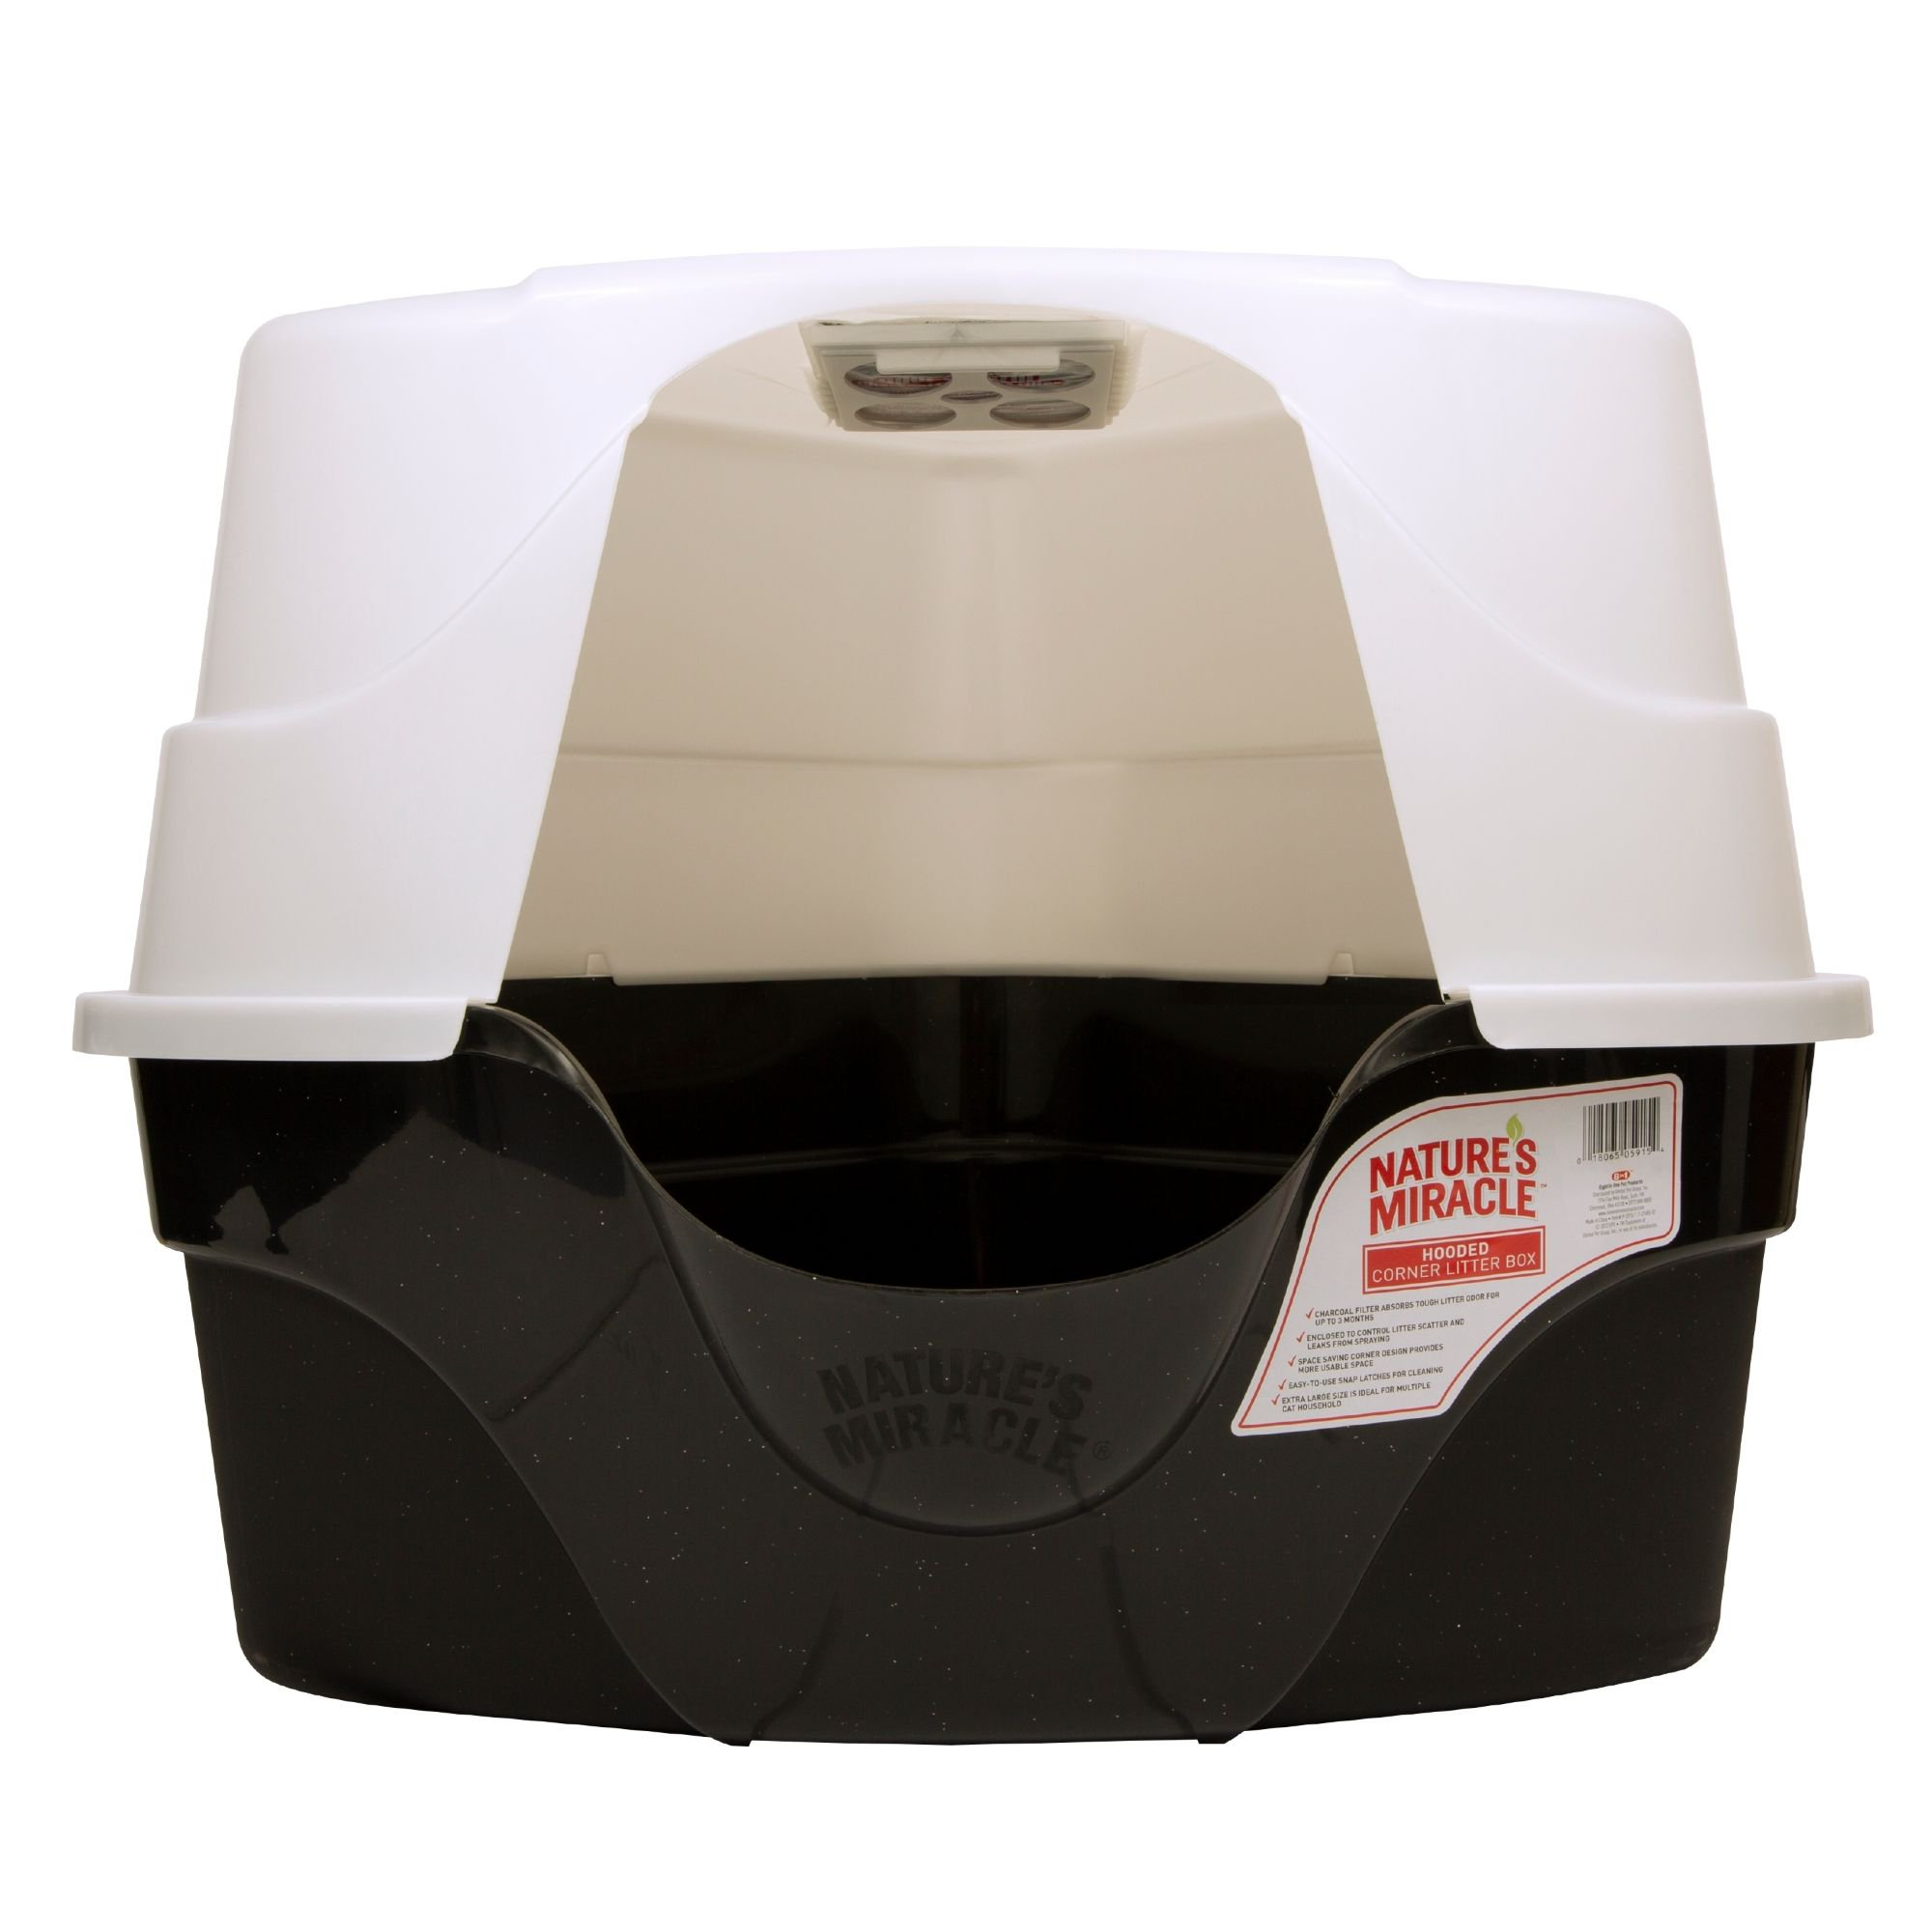 Nature's Miracle Hooded Corner Litter Box With Odor Control Charcoal Filter  | Petco